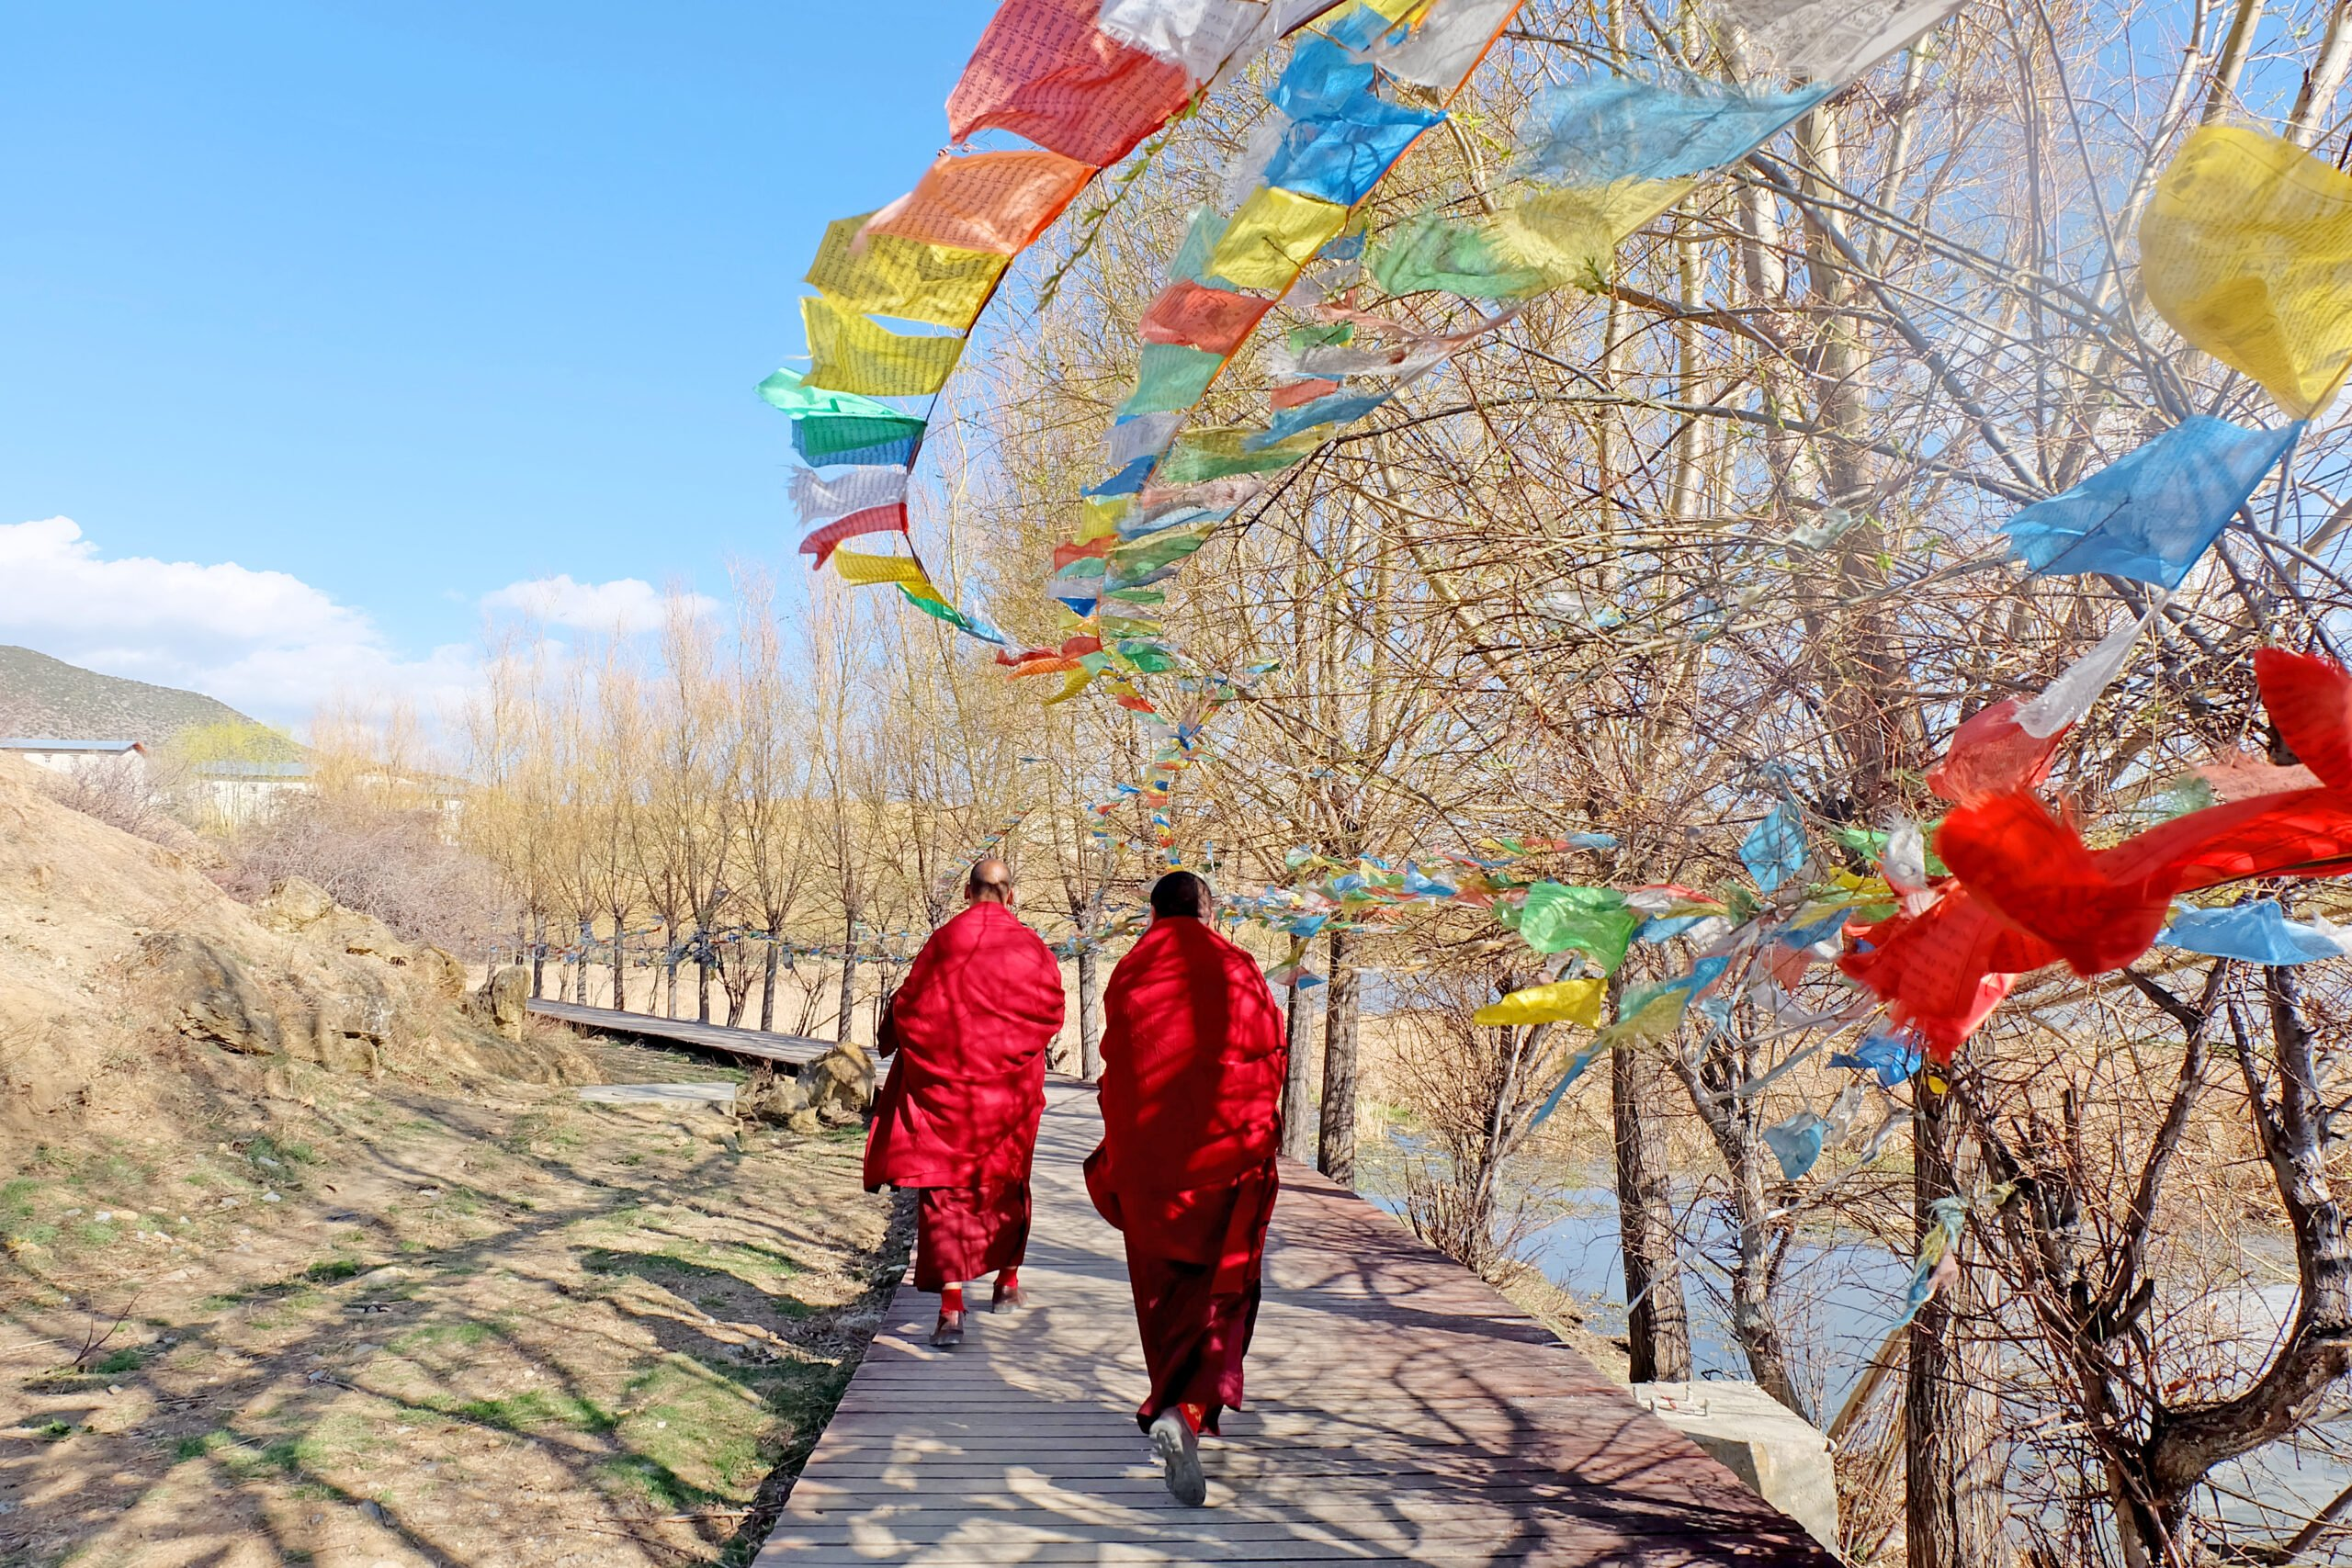 Learn About The Diverse Ethnic Groups In Yunnan In Our 8 Day Wild Yunnan Package